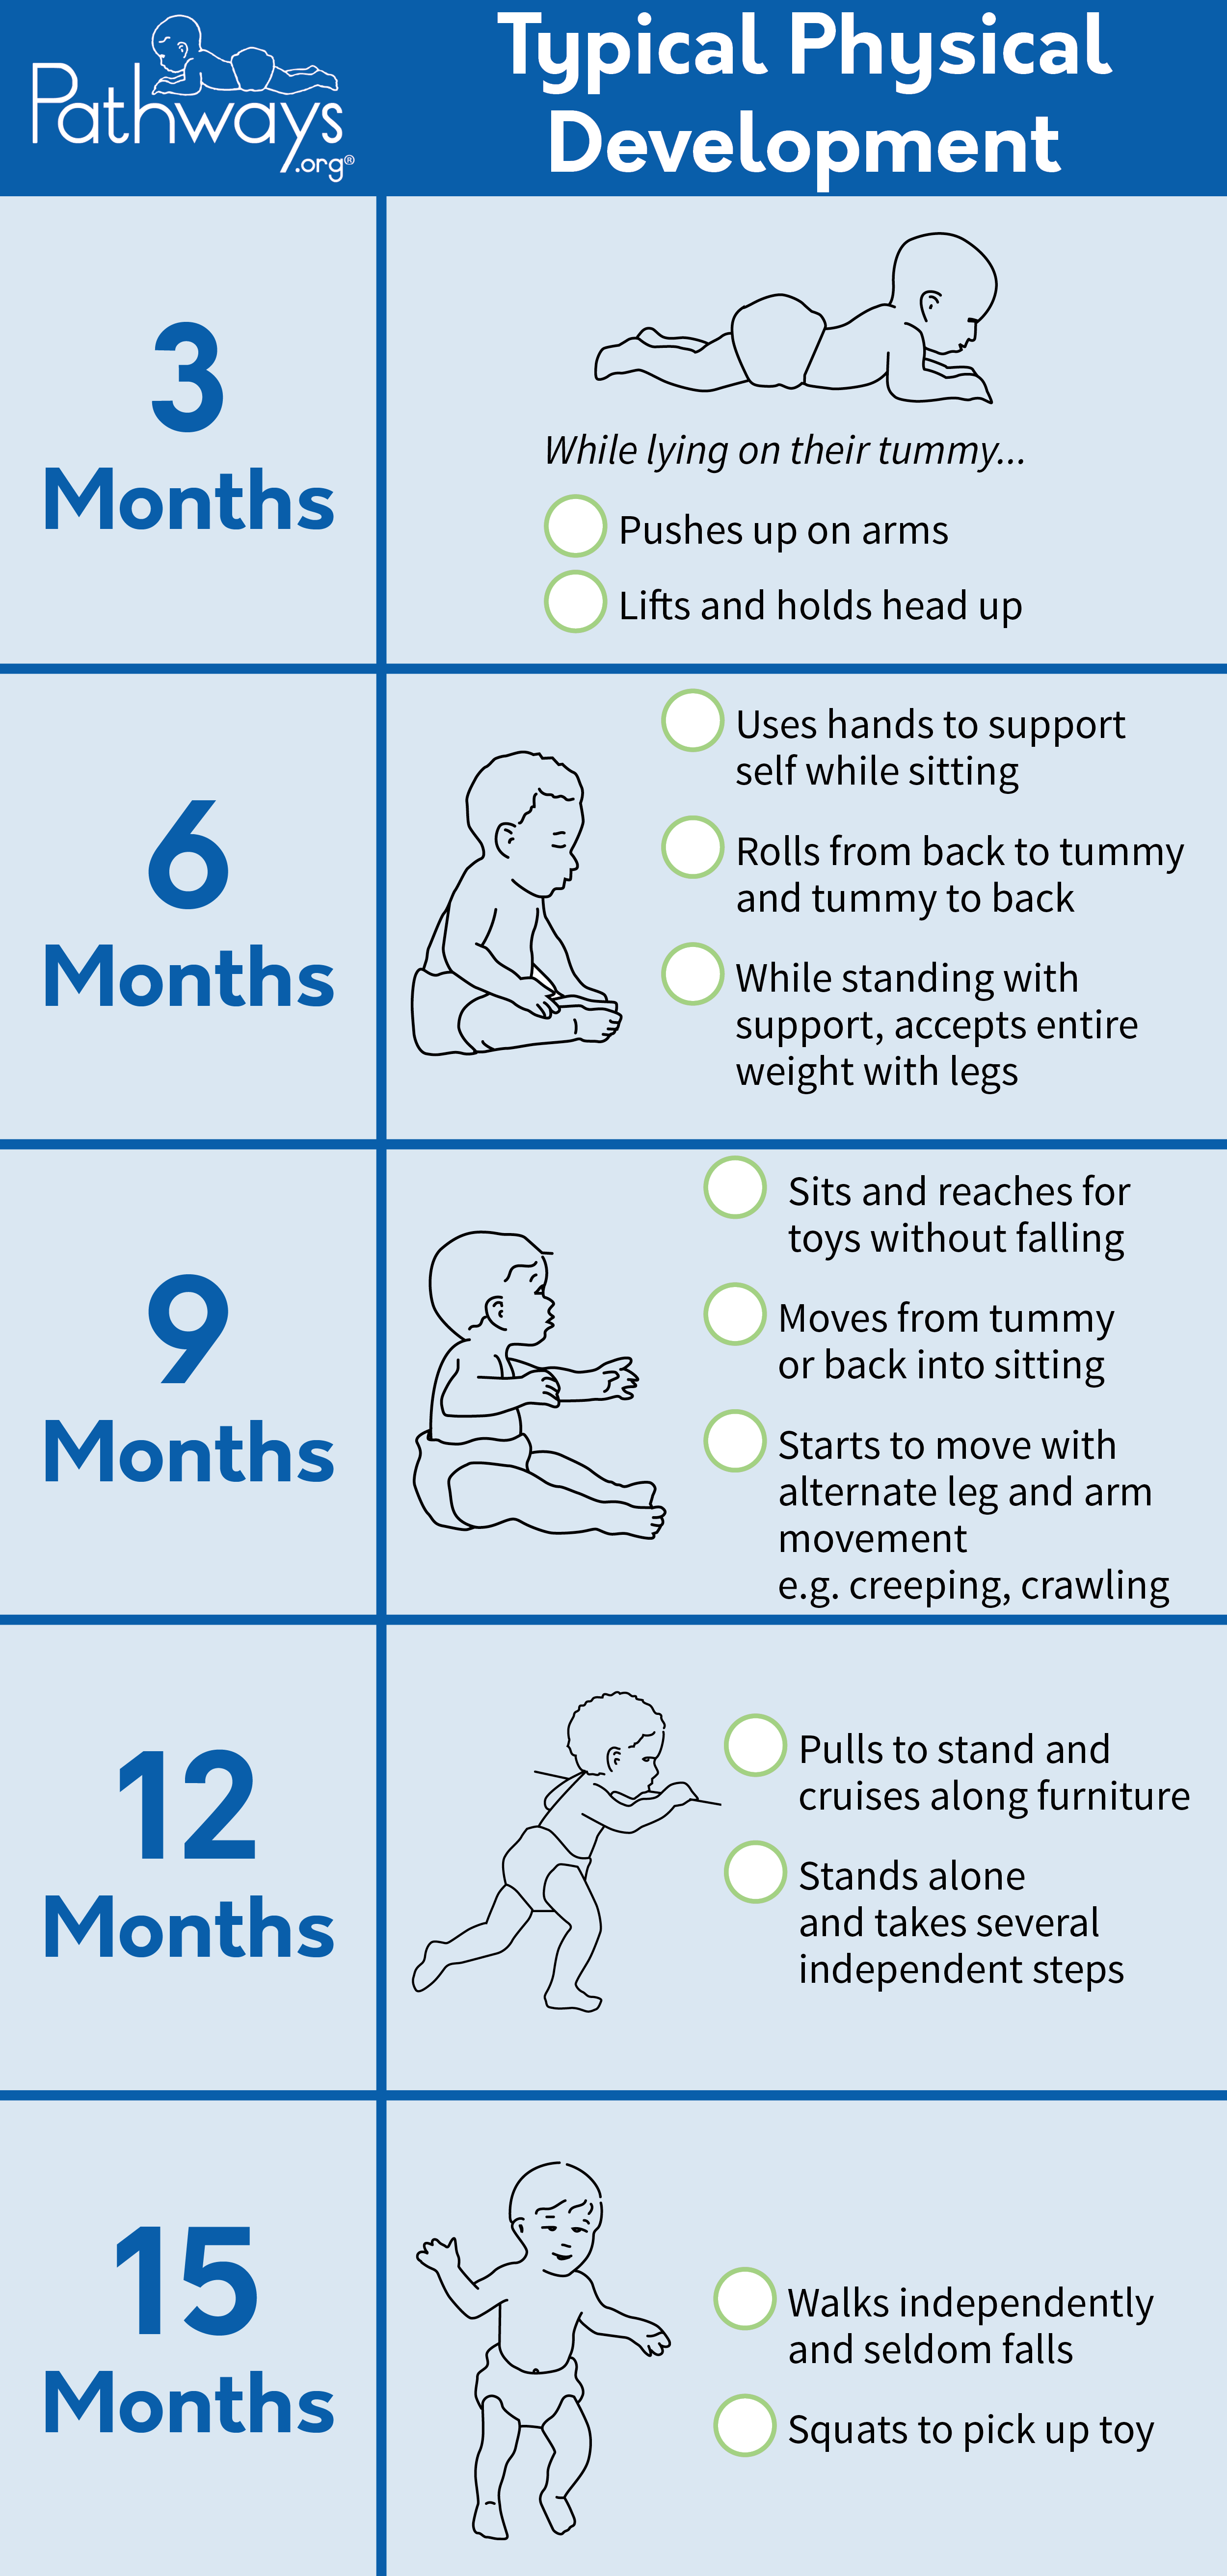 Assure The Best For Baby S Physcial Development Brochure Pathways Org Physical Development Child Development Milestones Child Development Stages